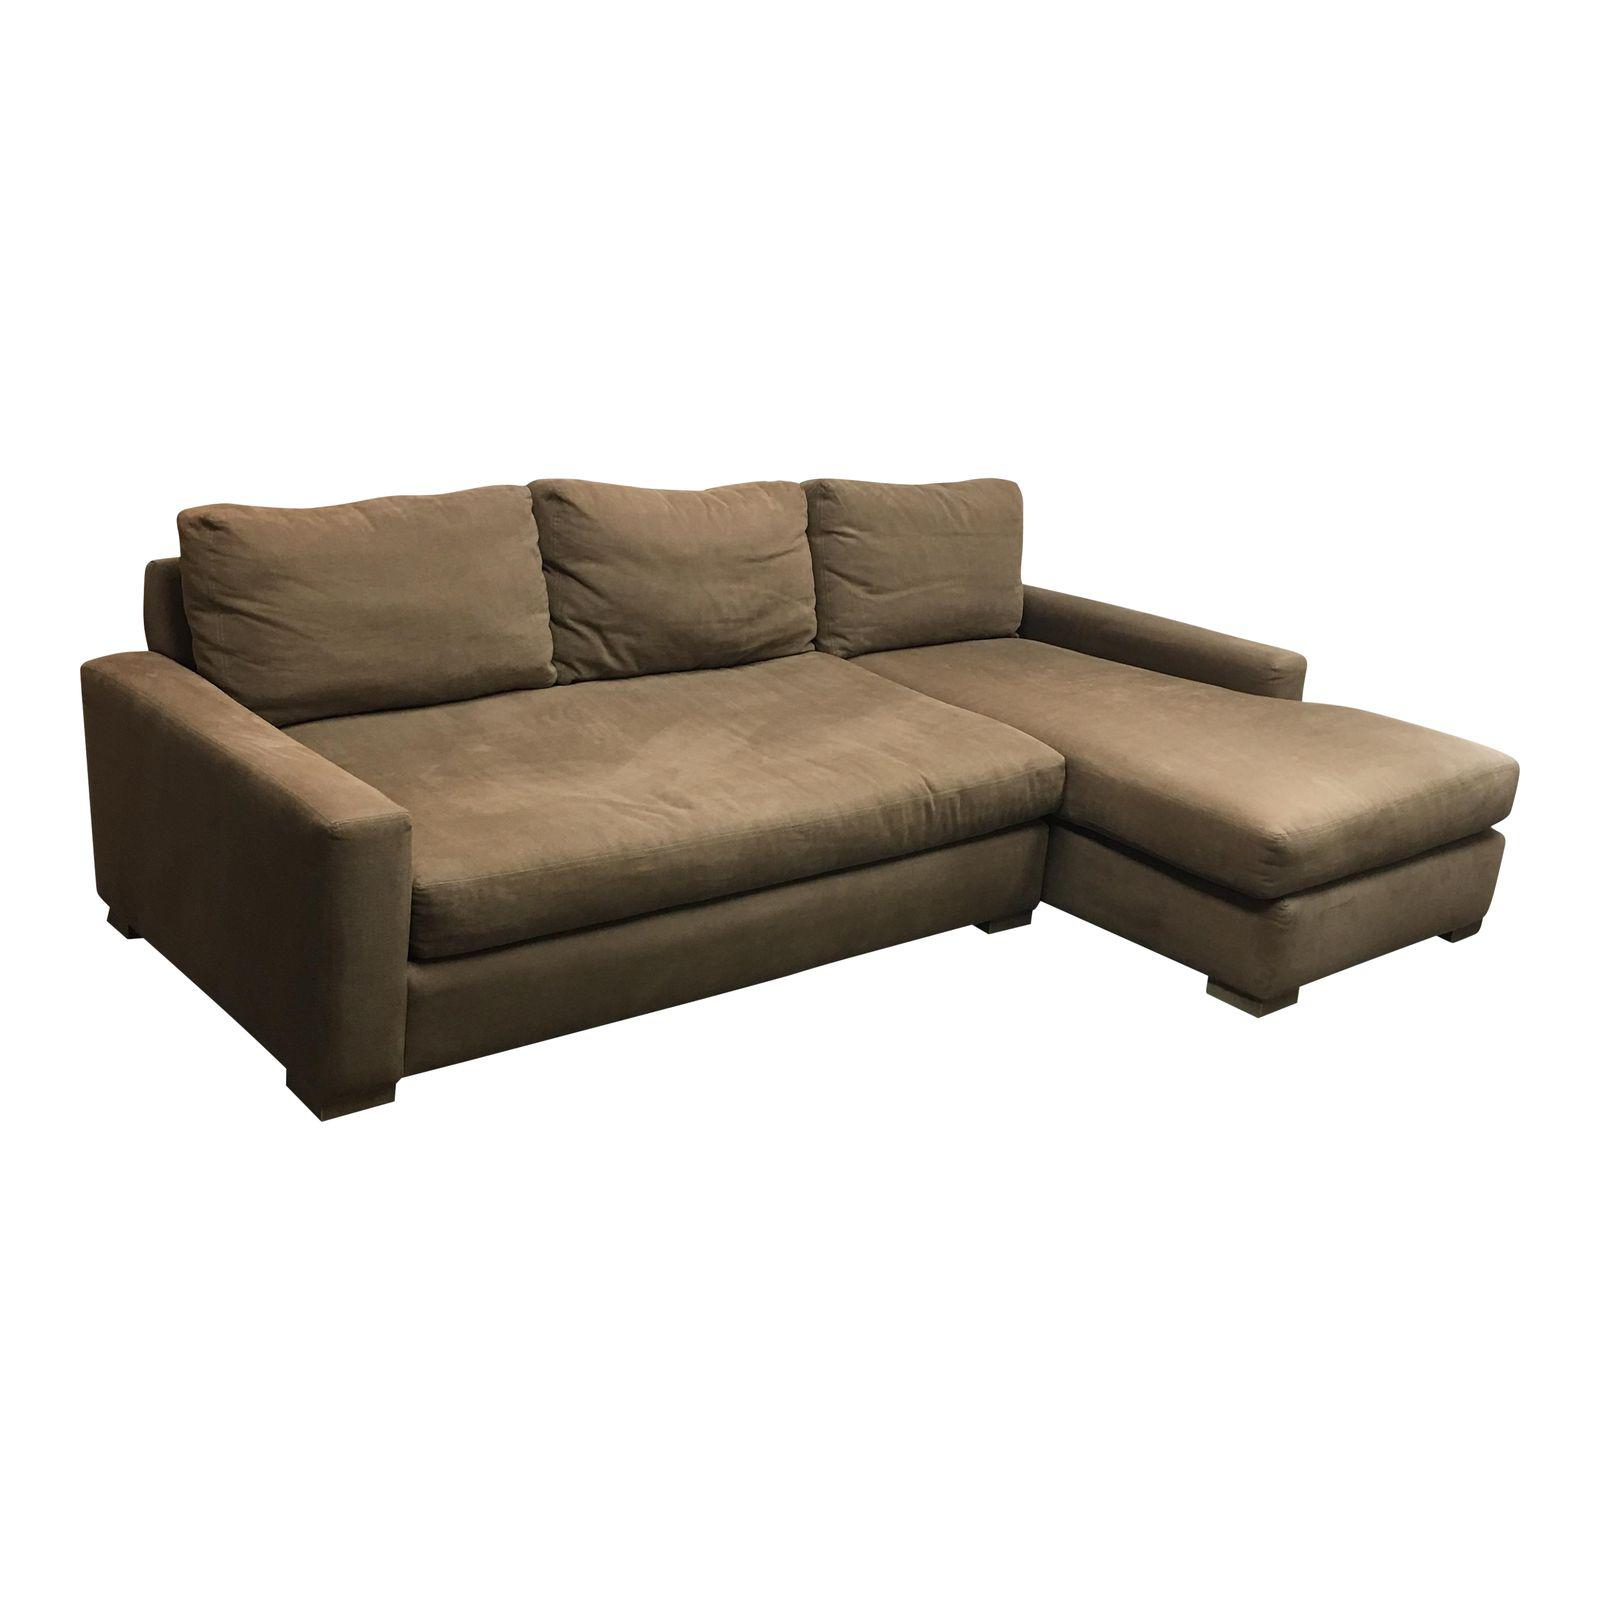 Restoration Hardware Maxwell Sectional With Right Chaise. Origina Price $4800.00 - Design Plus Gallery  sc 1 st  Design Plus Consignment & Restoration Hardware Maxwell Sectional With Right Chaise. Origina ...